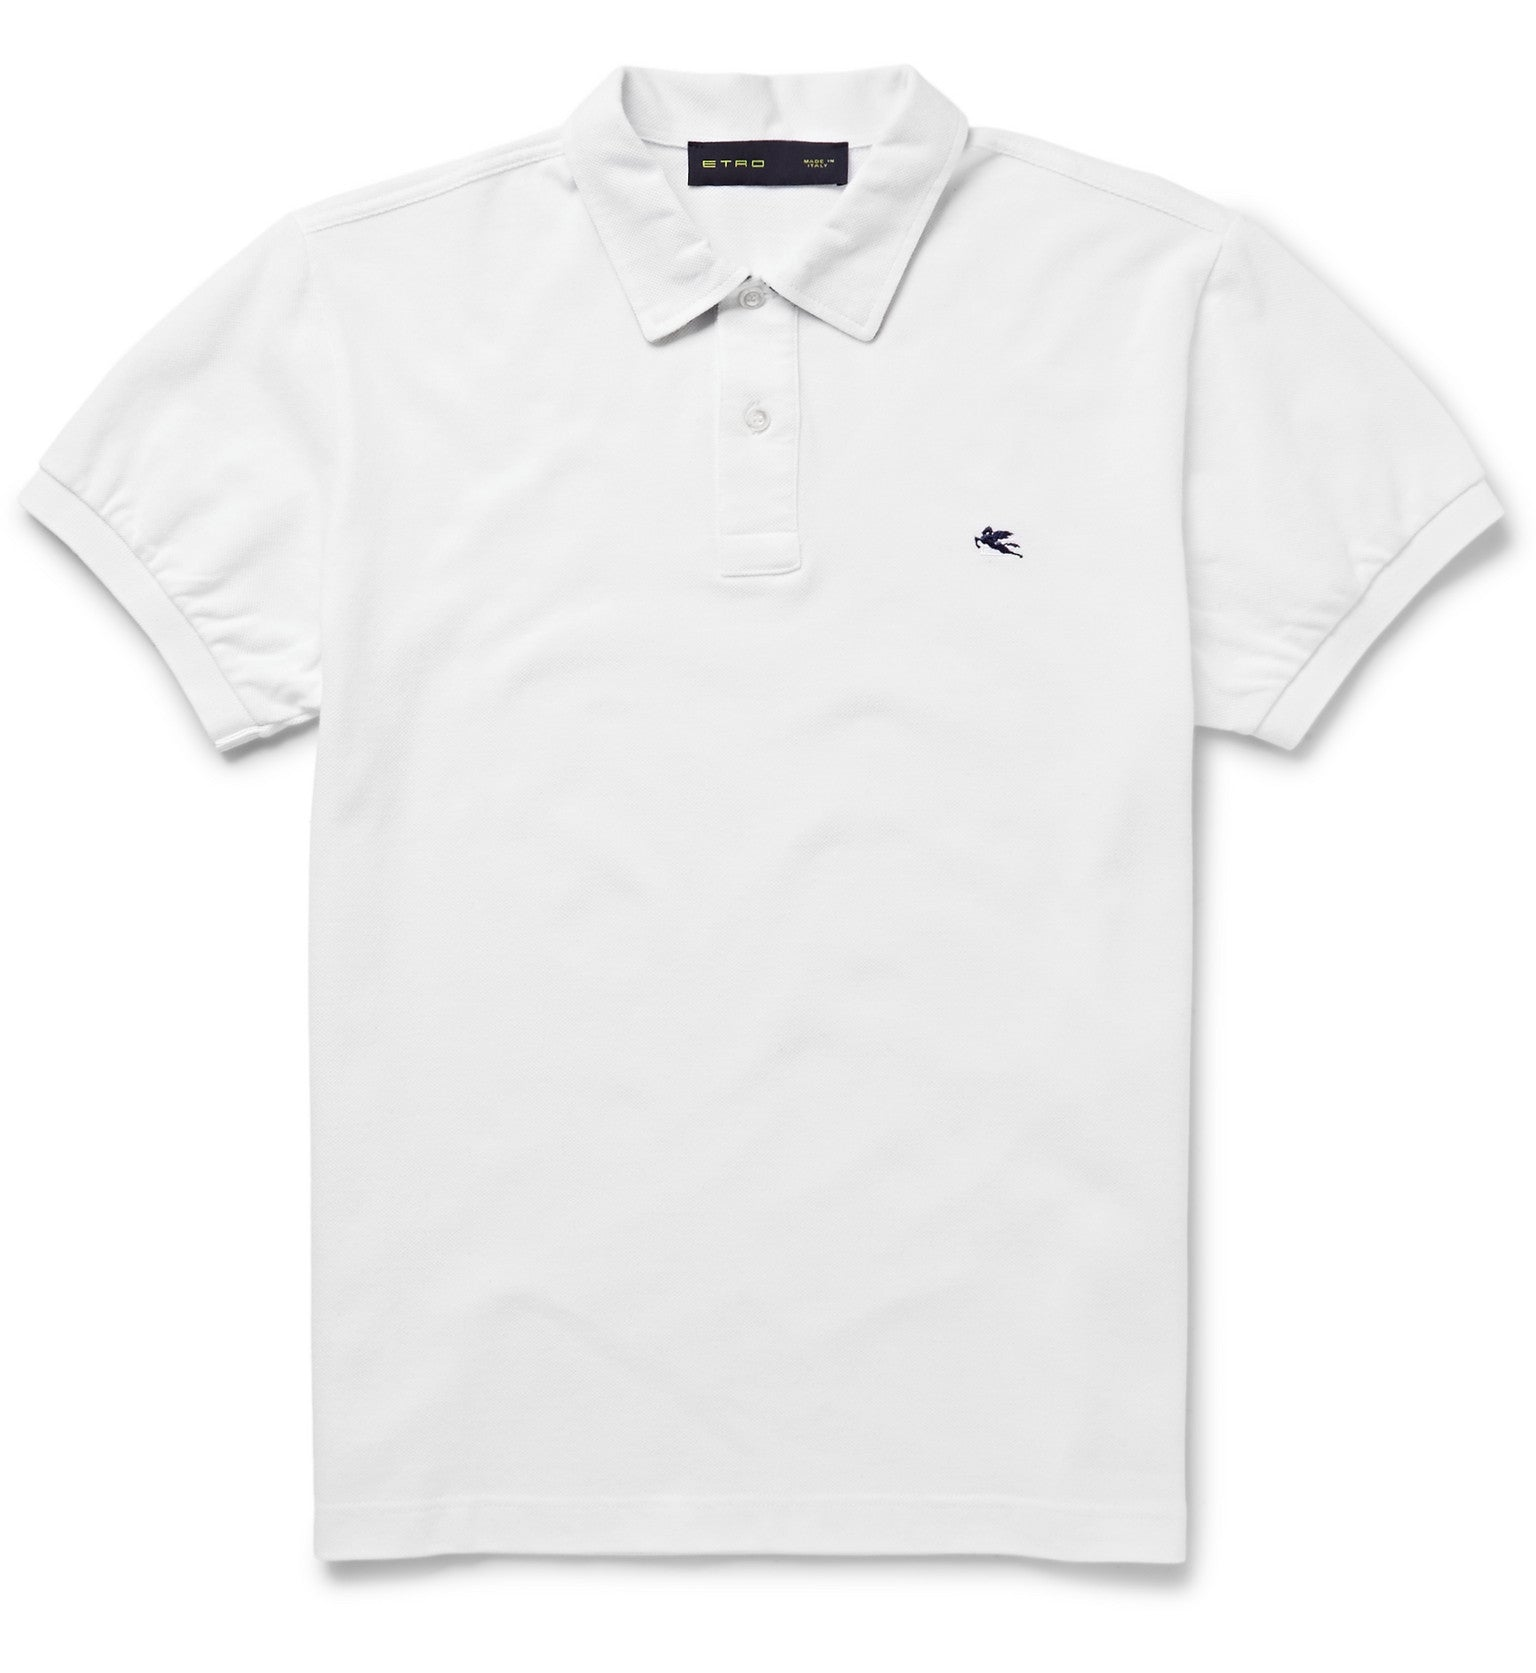 Etro Short Sleeve Polo, White